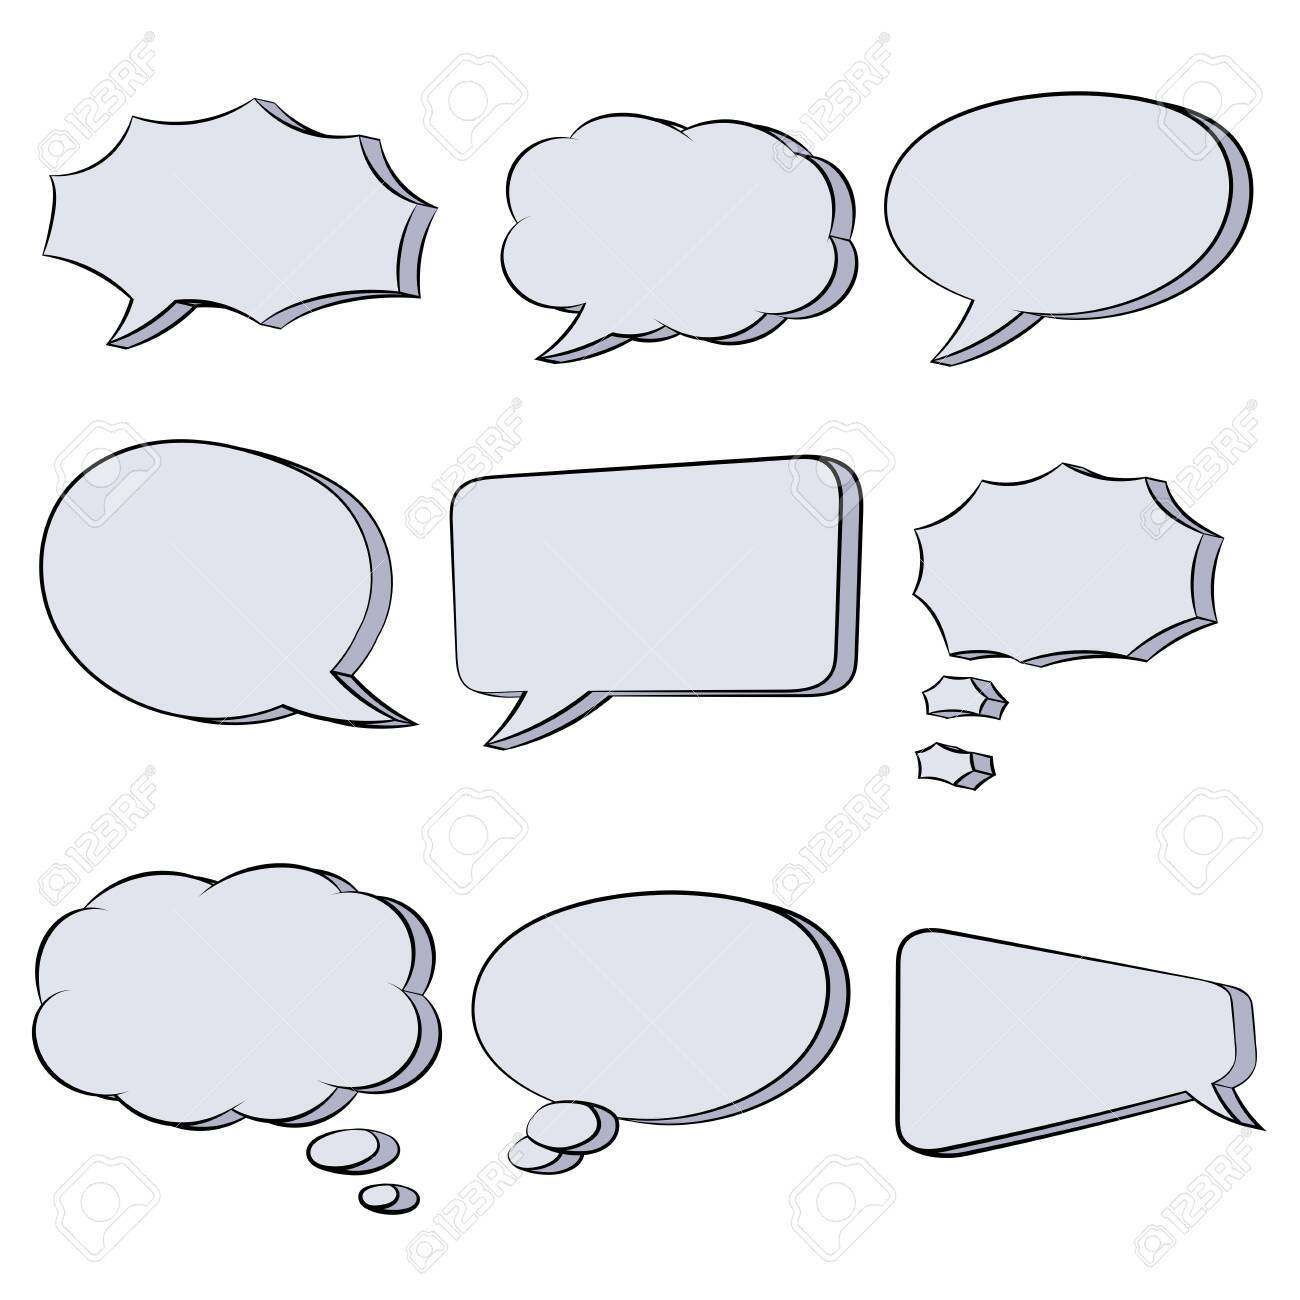 Speech bubbles. Hand drawn sketch. Vector illustration isolated on white background - 134550995